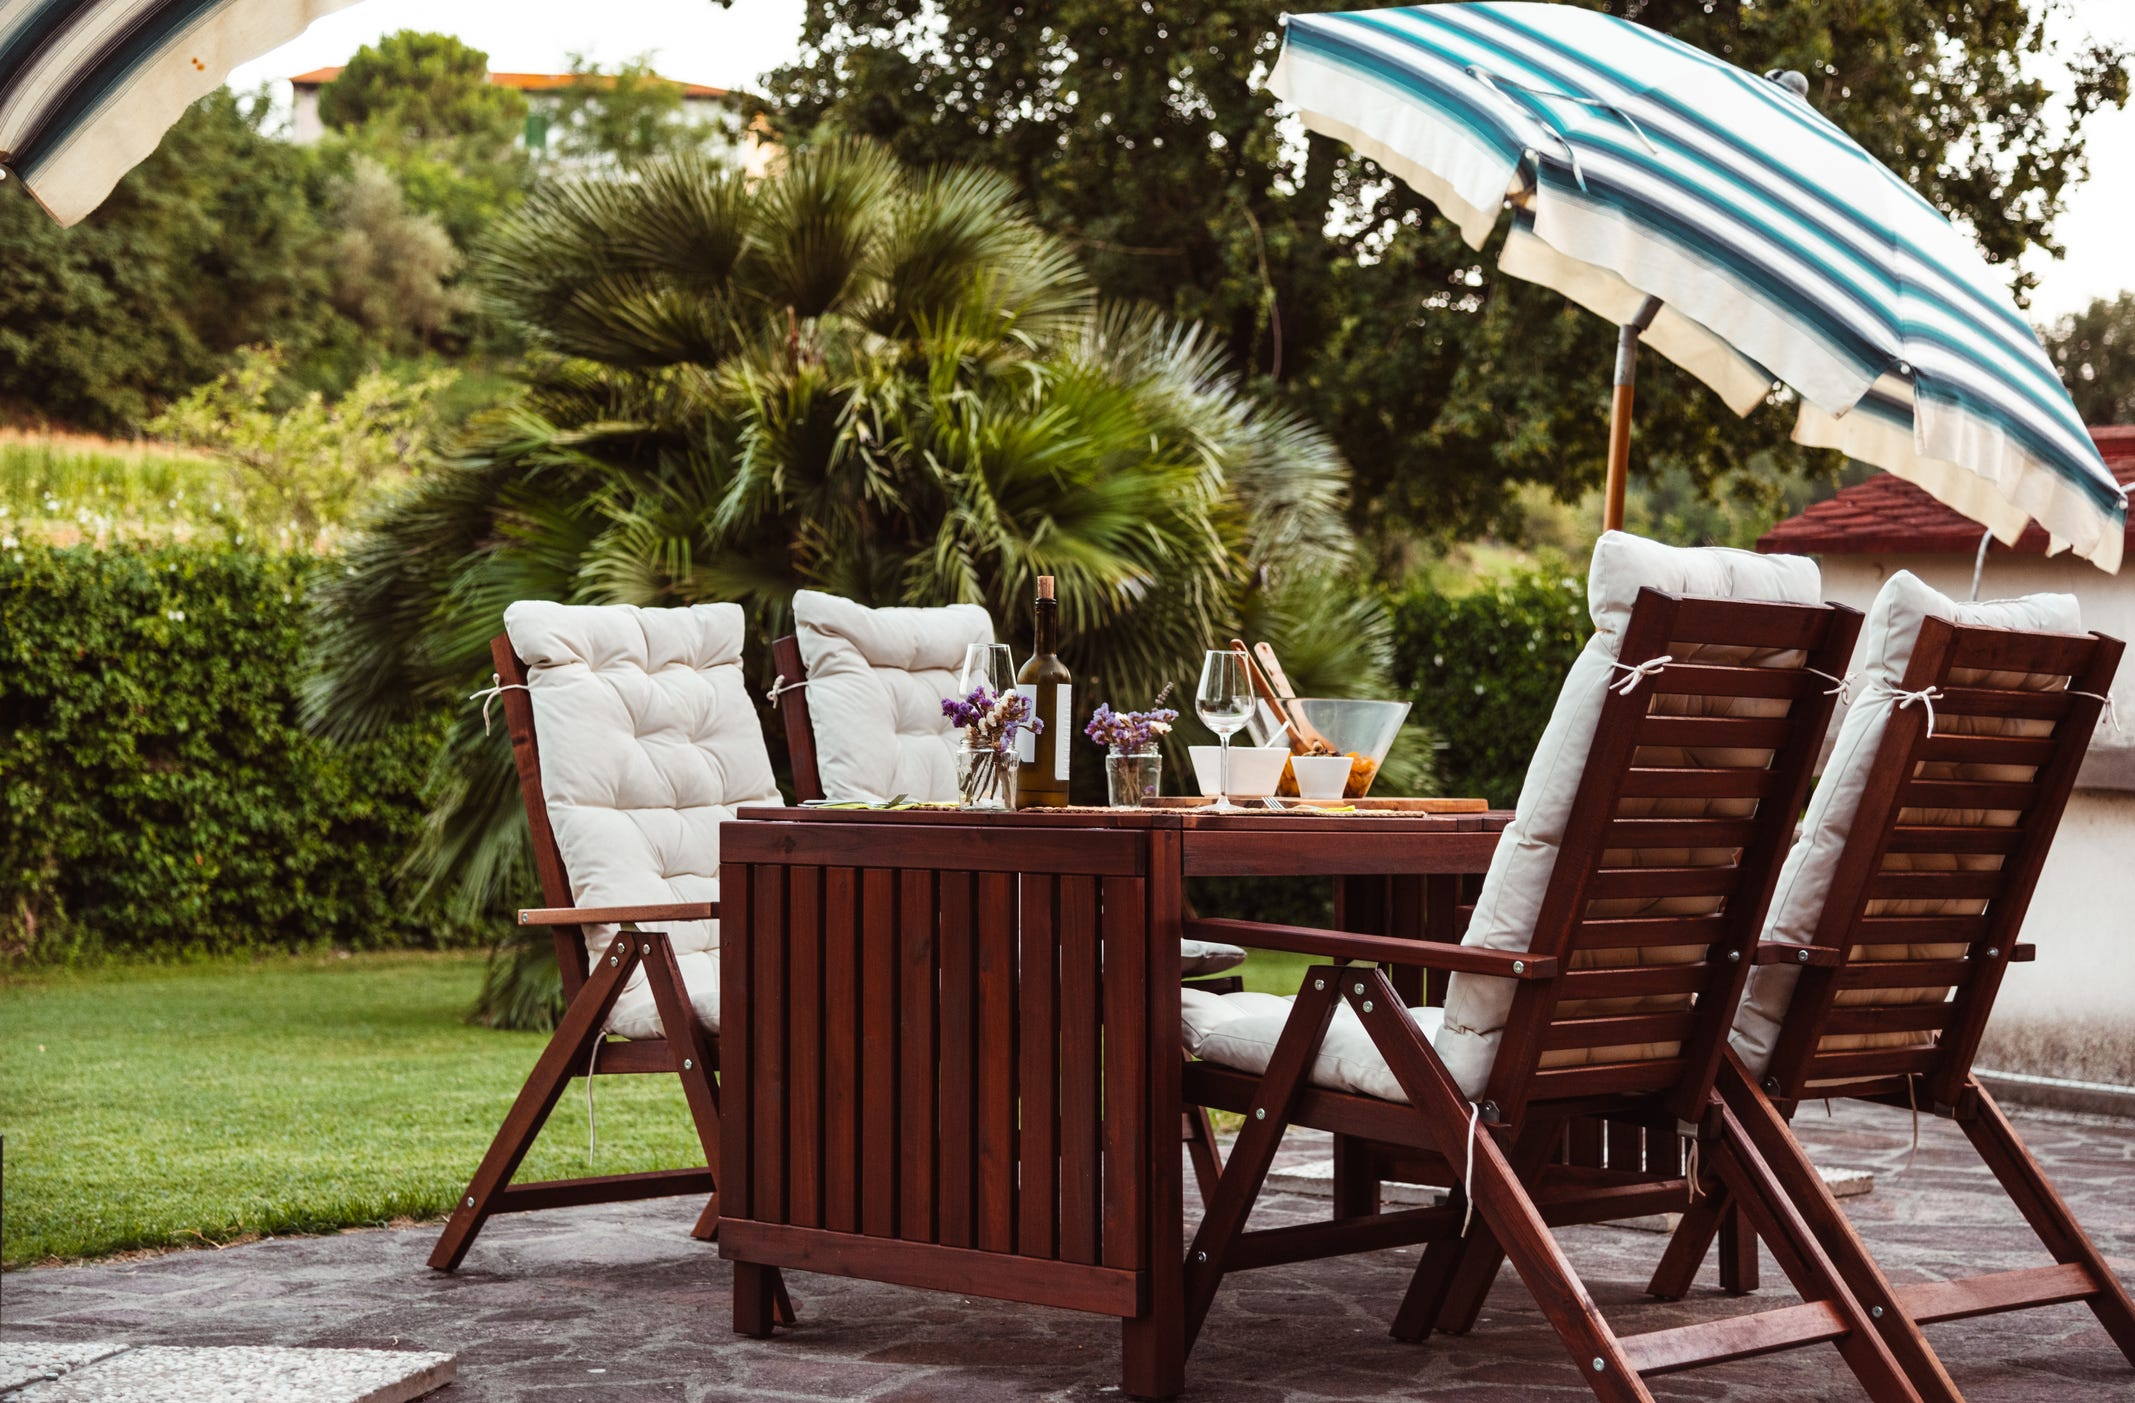 usatoday.com - Nishka Dhawan, USA TODAY - Patio furniture is heavily discounted at Wayfair, Kohl's and more